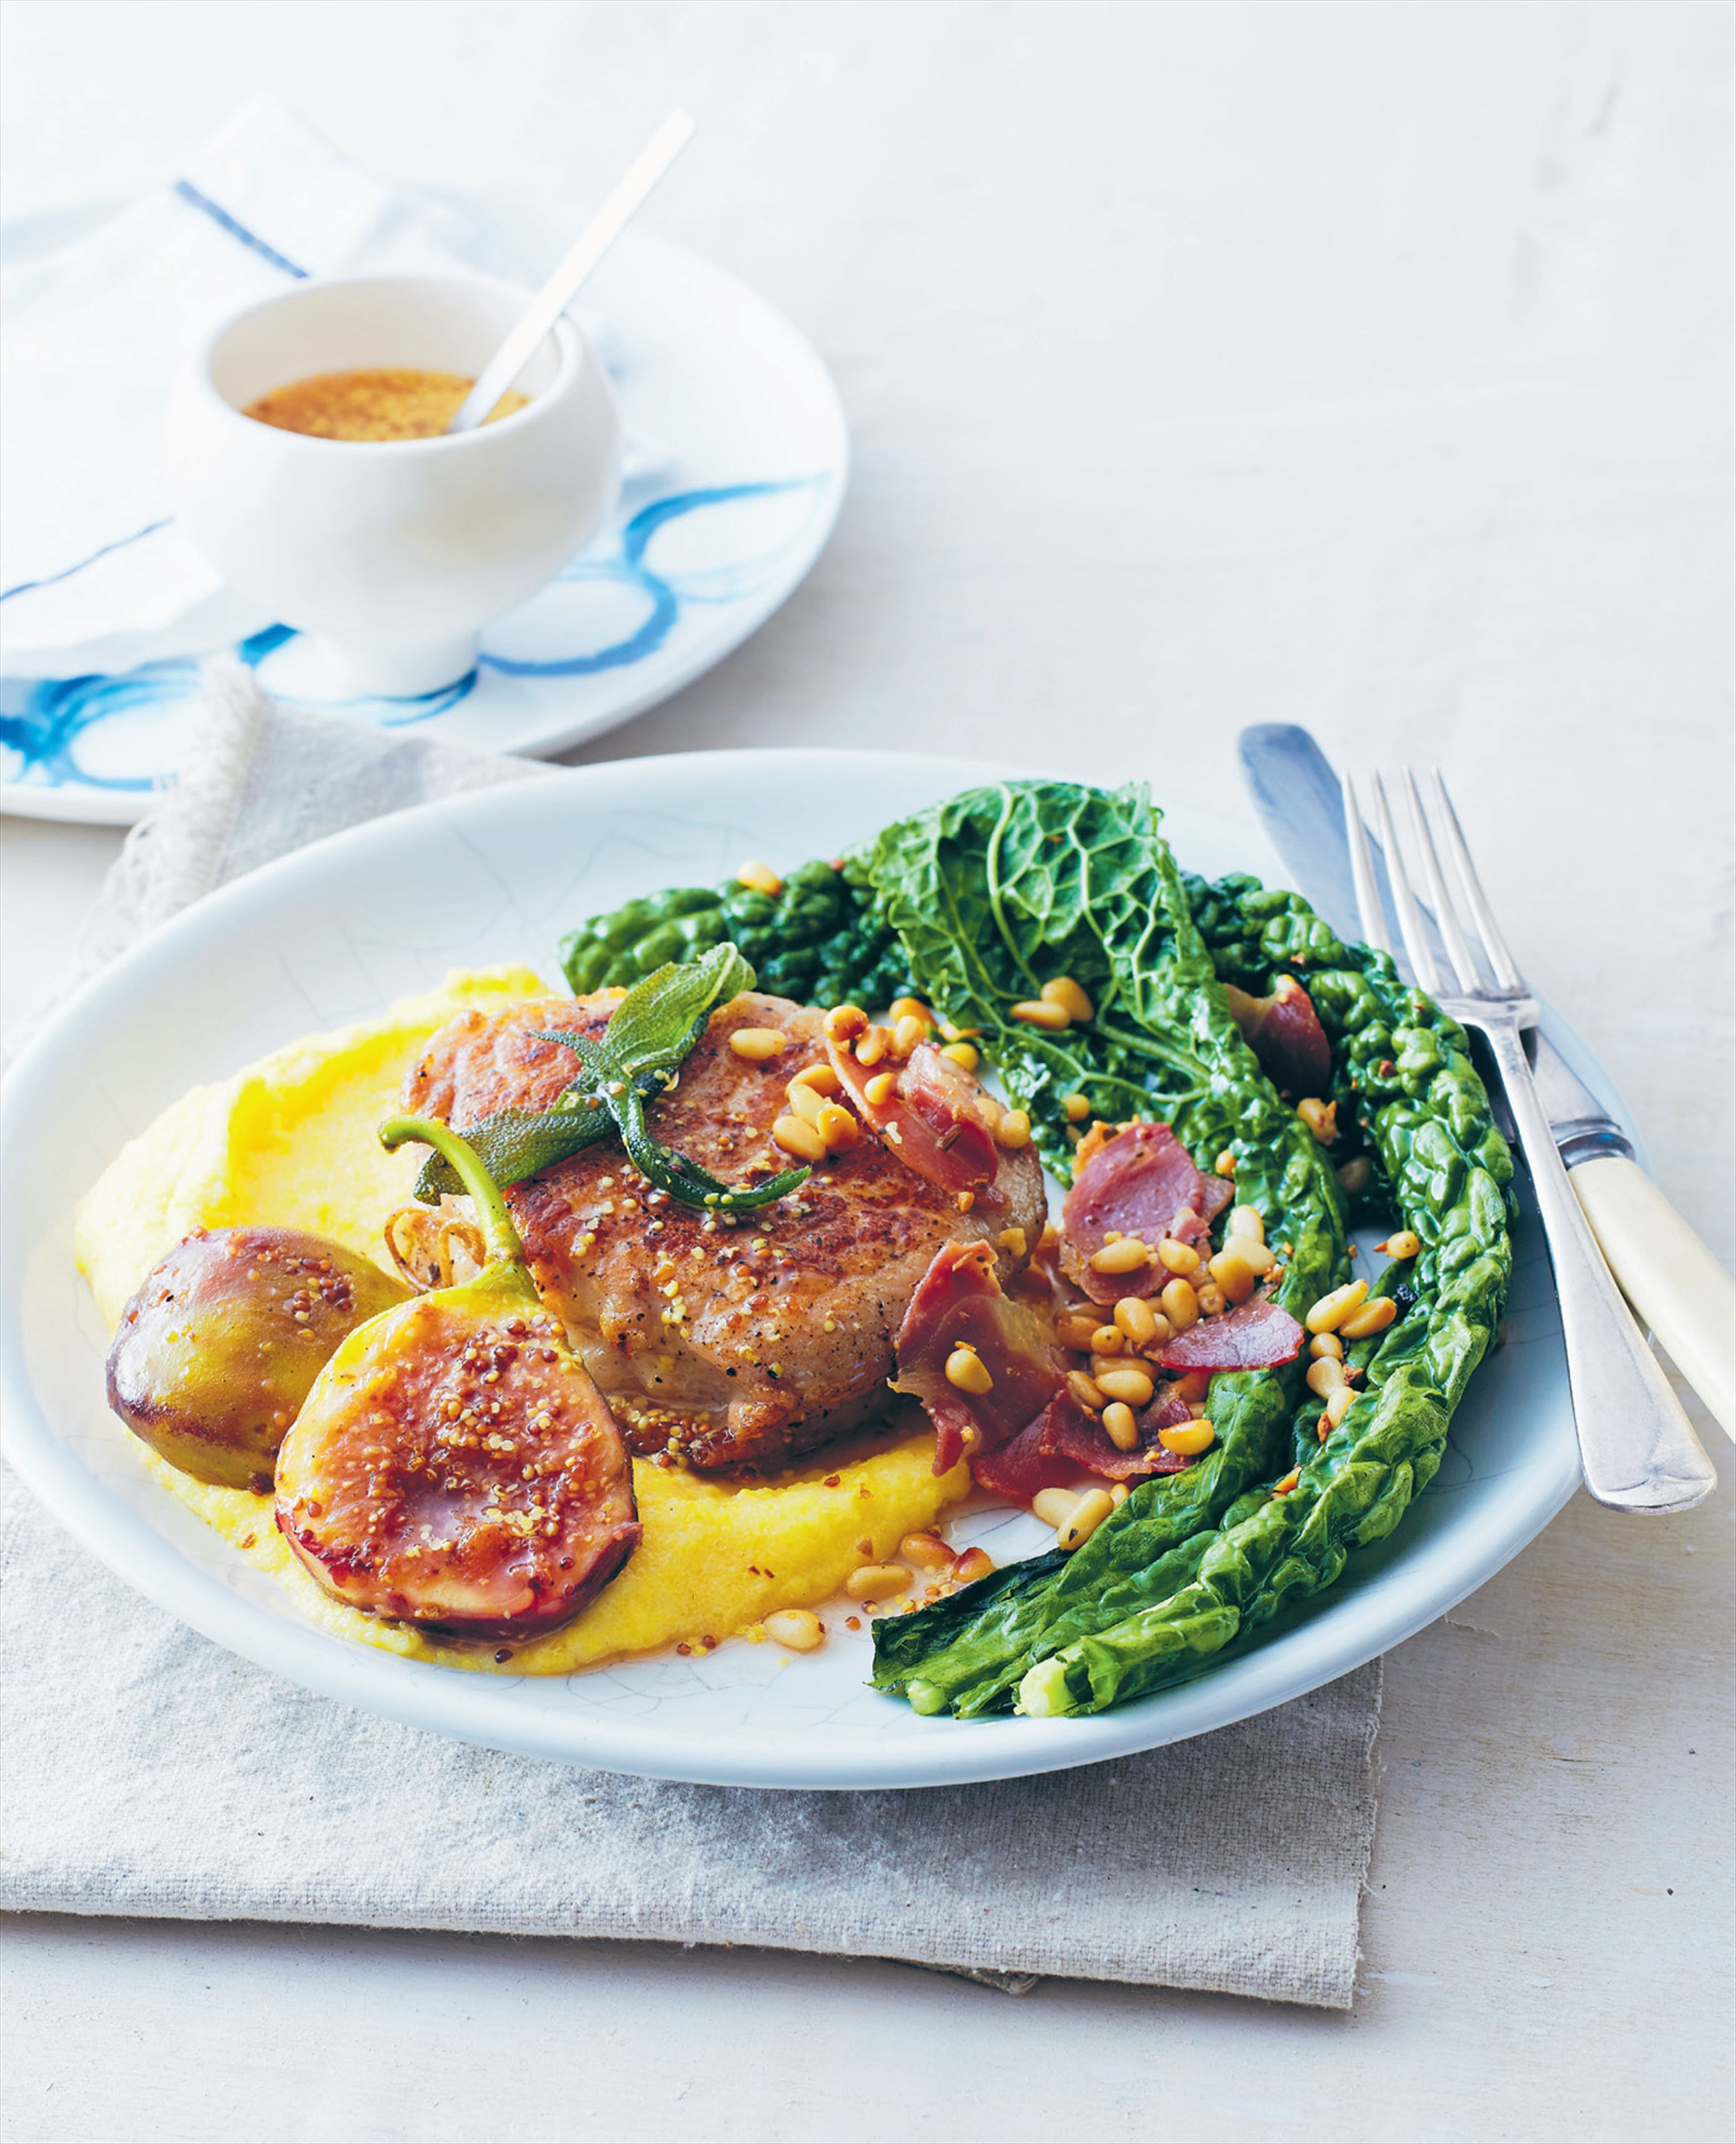 The perfect pork steak with figs and soft polenta